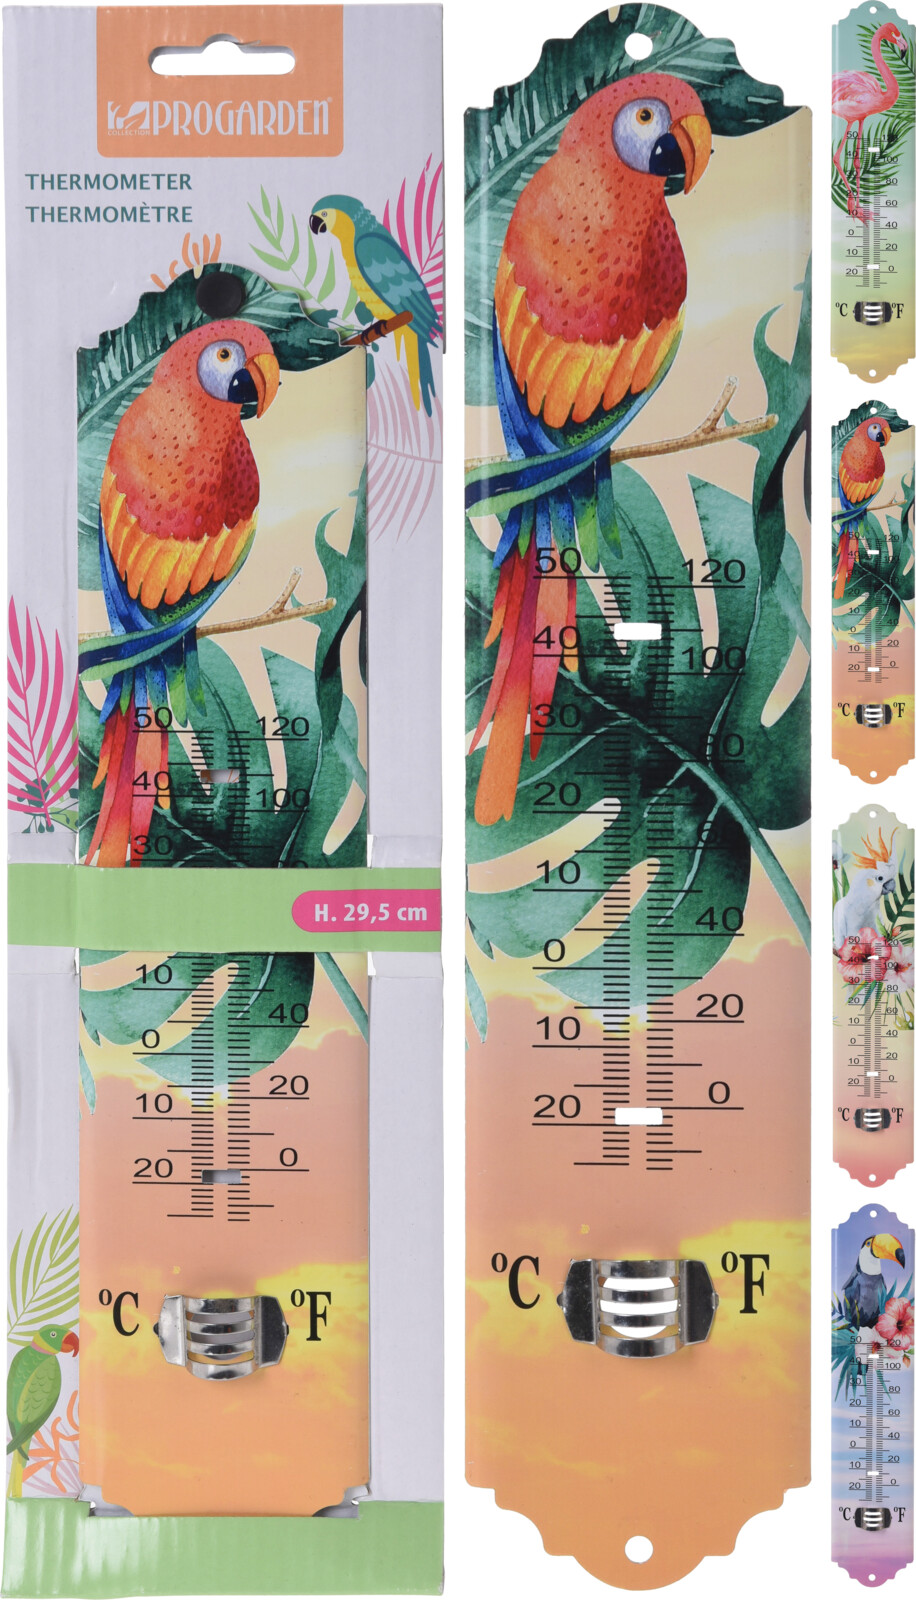 Thermometer 29.5cm 4ass tropis